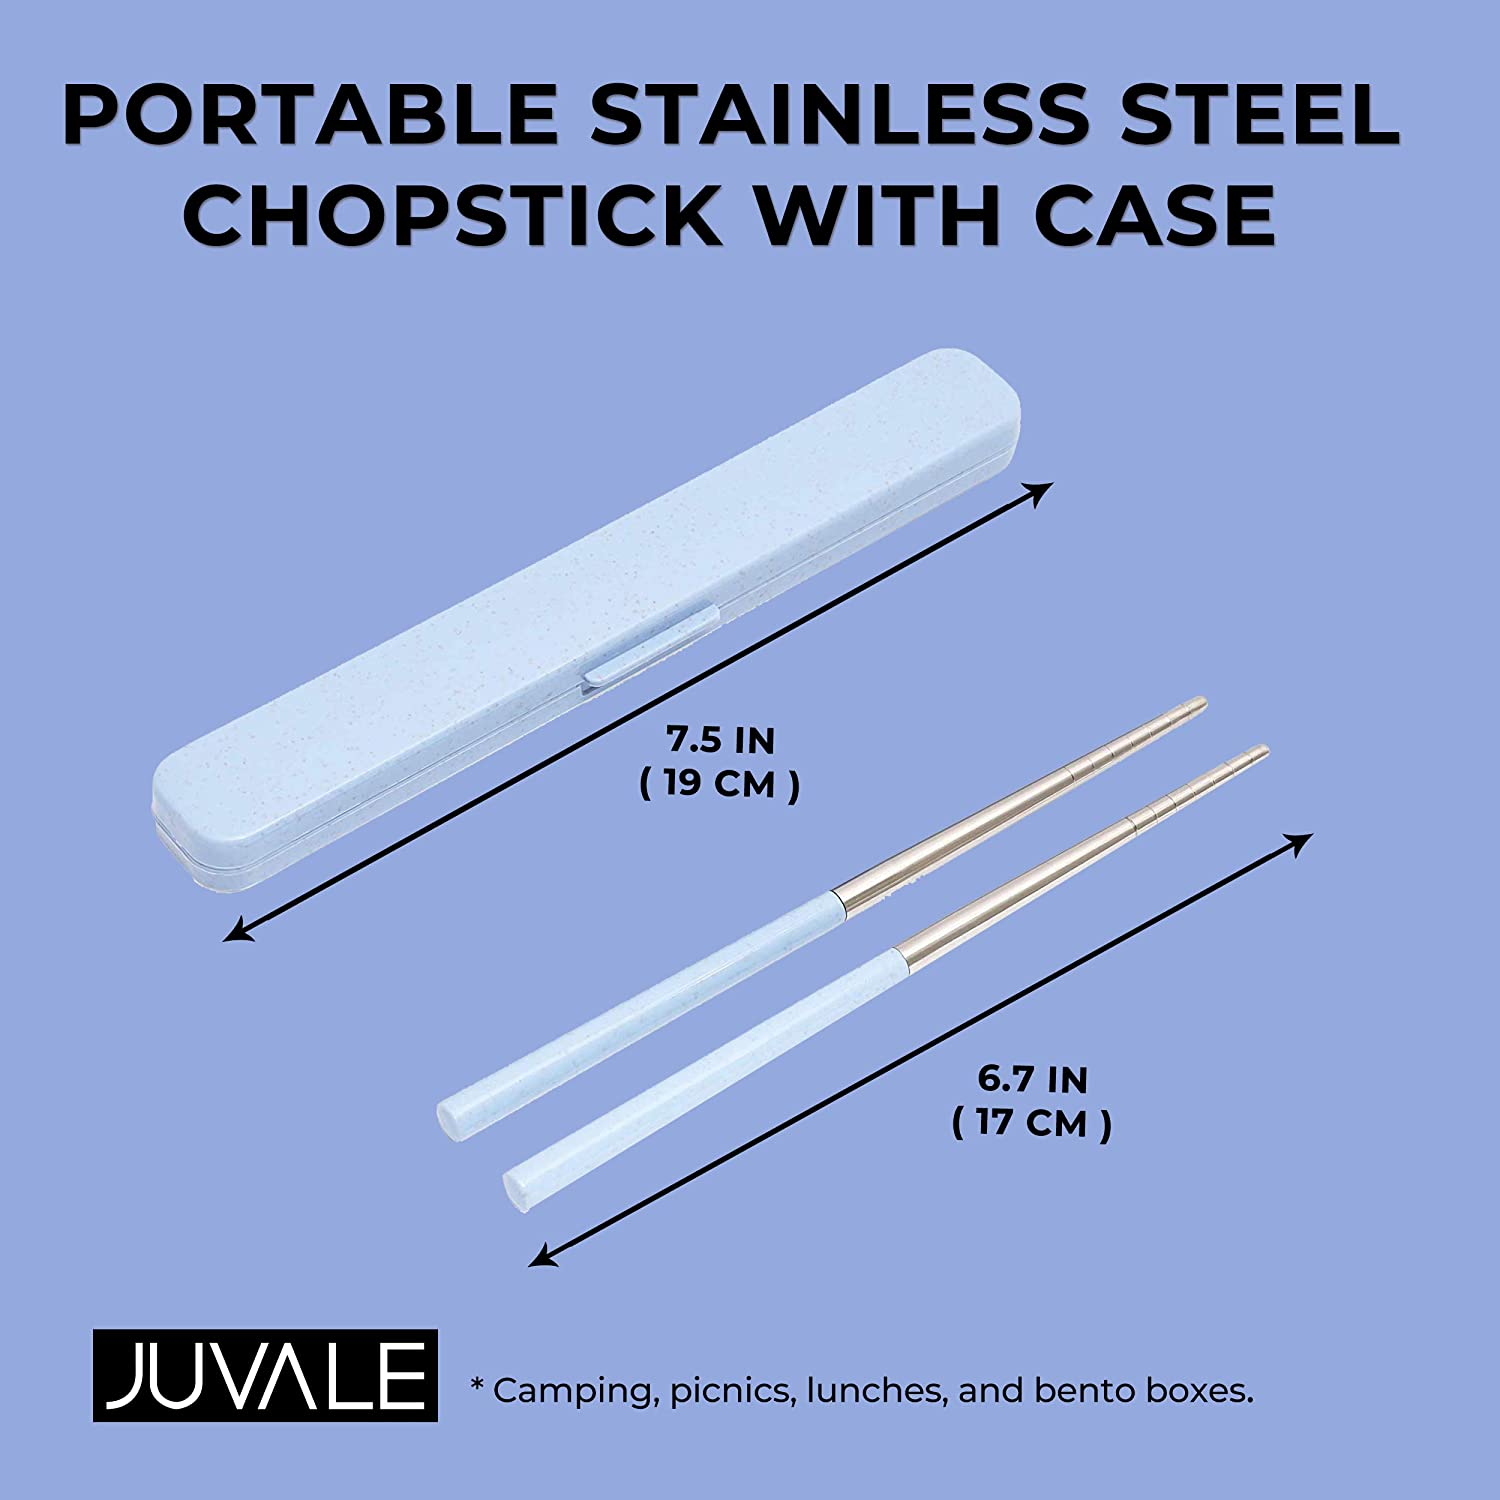 Portable Stainless Steel Chopstick with Case 7.5 in, Blue